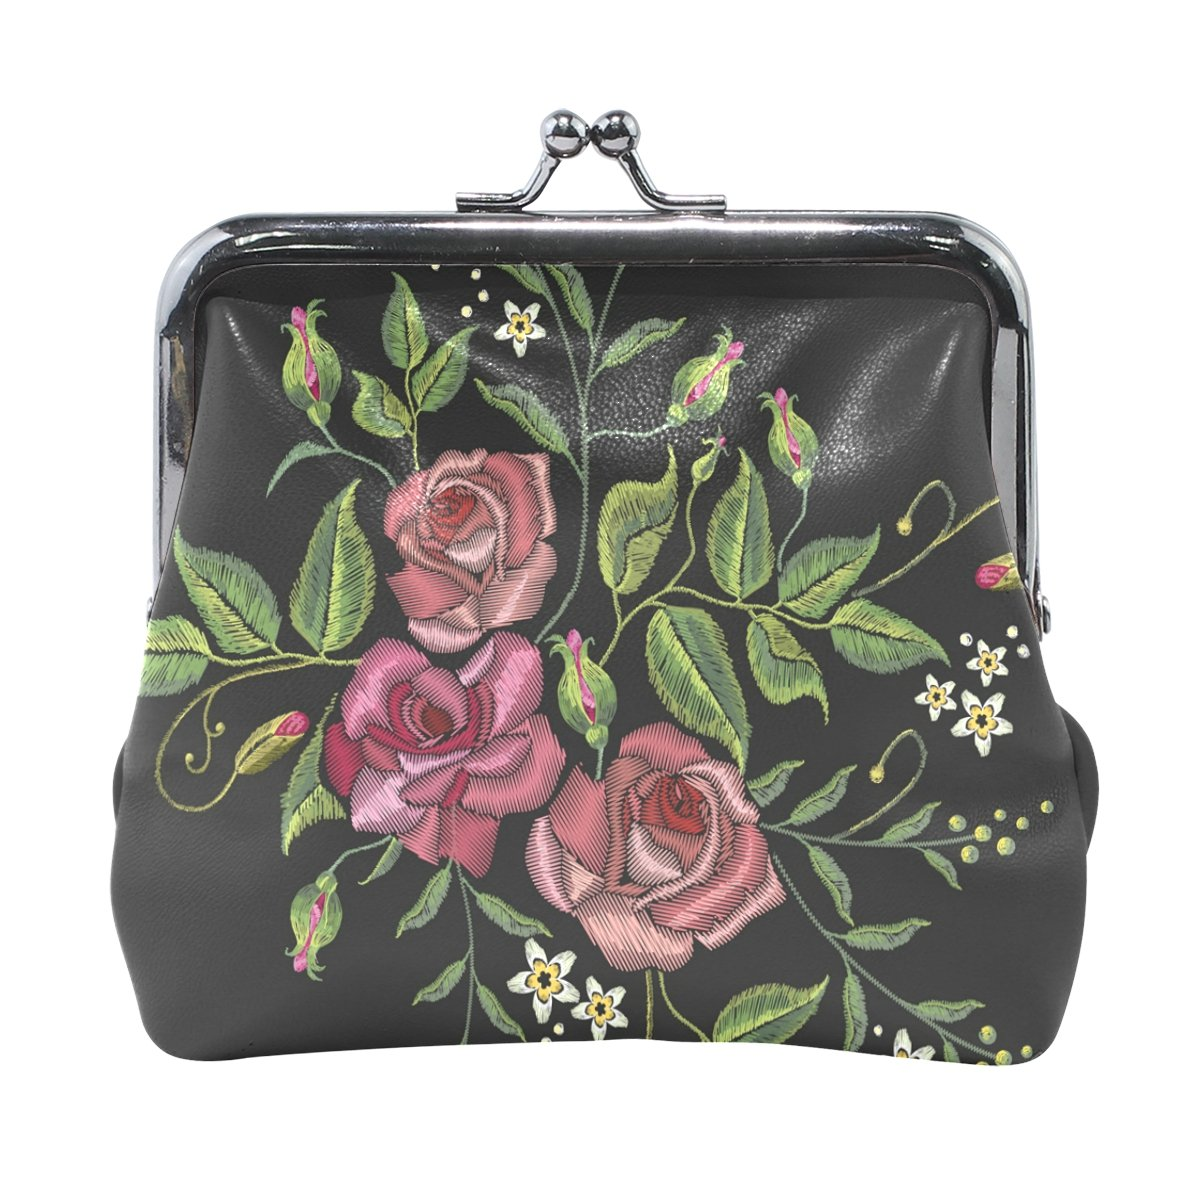 Coin Purse Embroidery Rose Flower Wallet Buckle Clutch Handbag For Women Gift